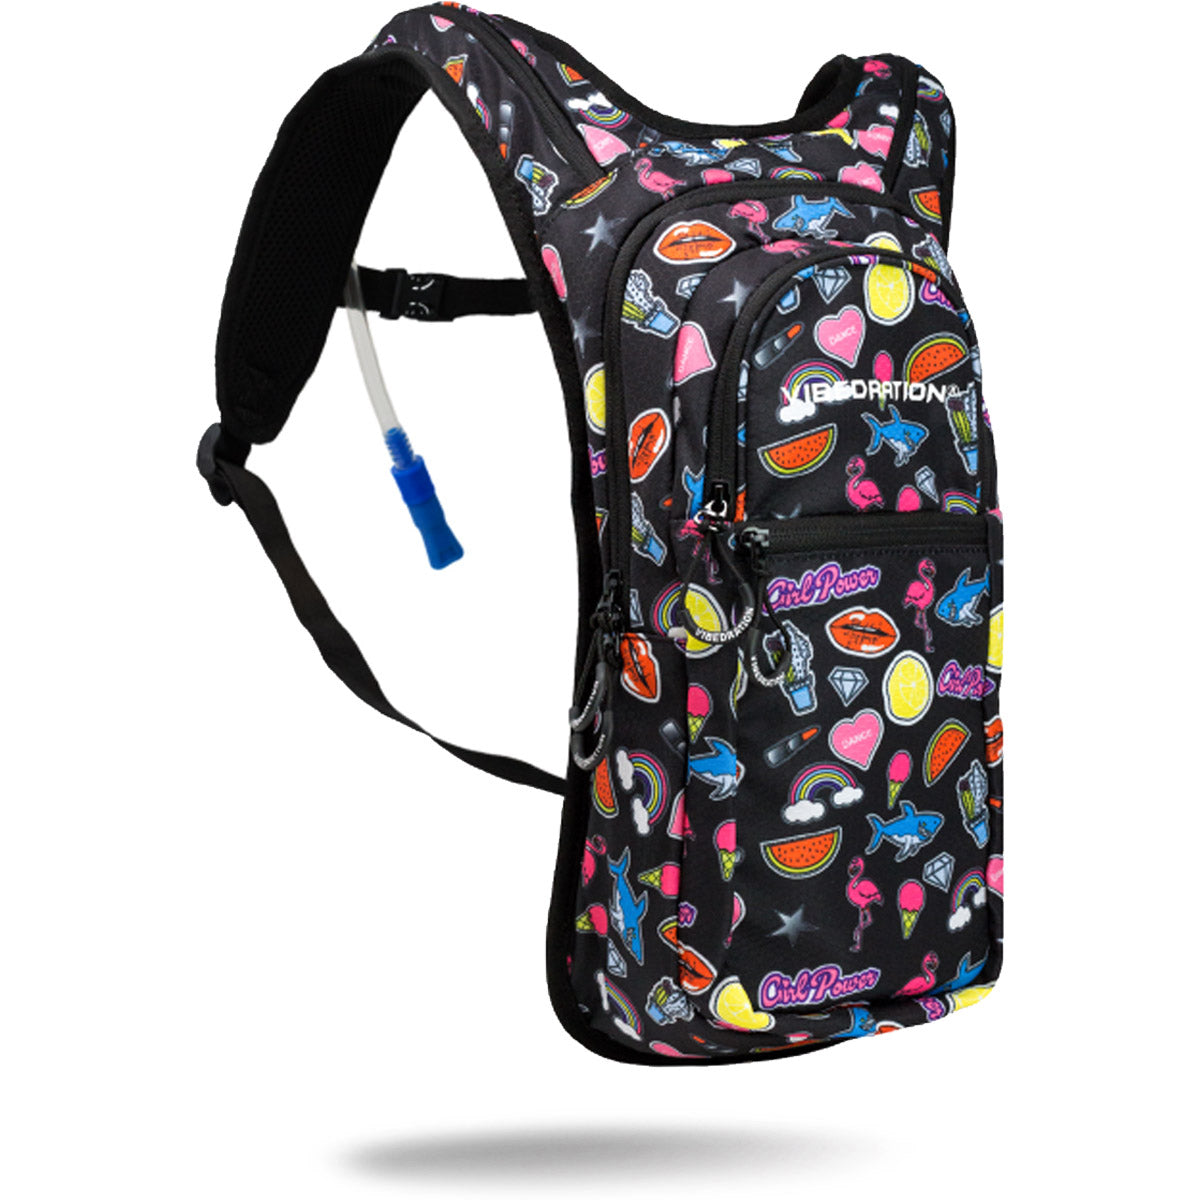 2.0L black hydration pack with lipstick, sharks, kisses, watermelons and ice cream cones